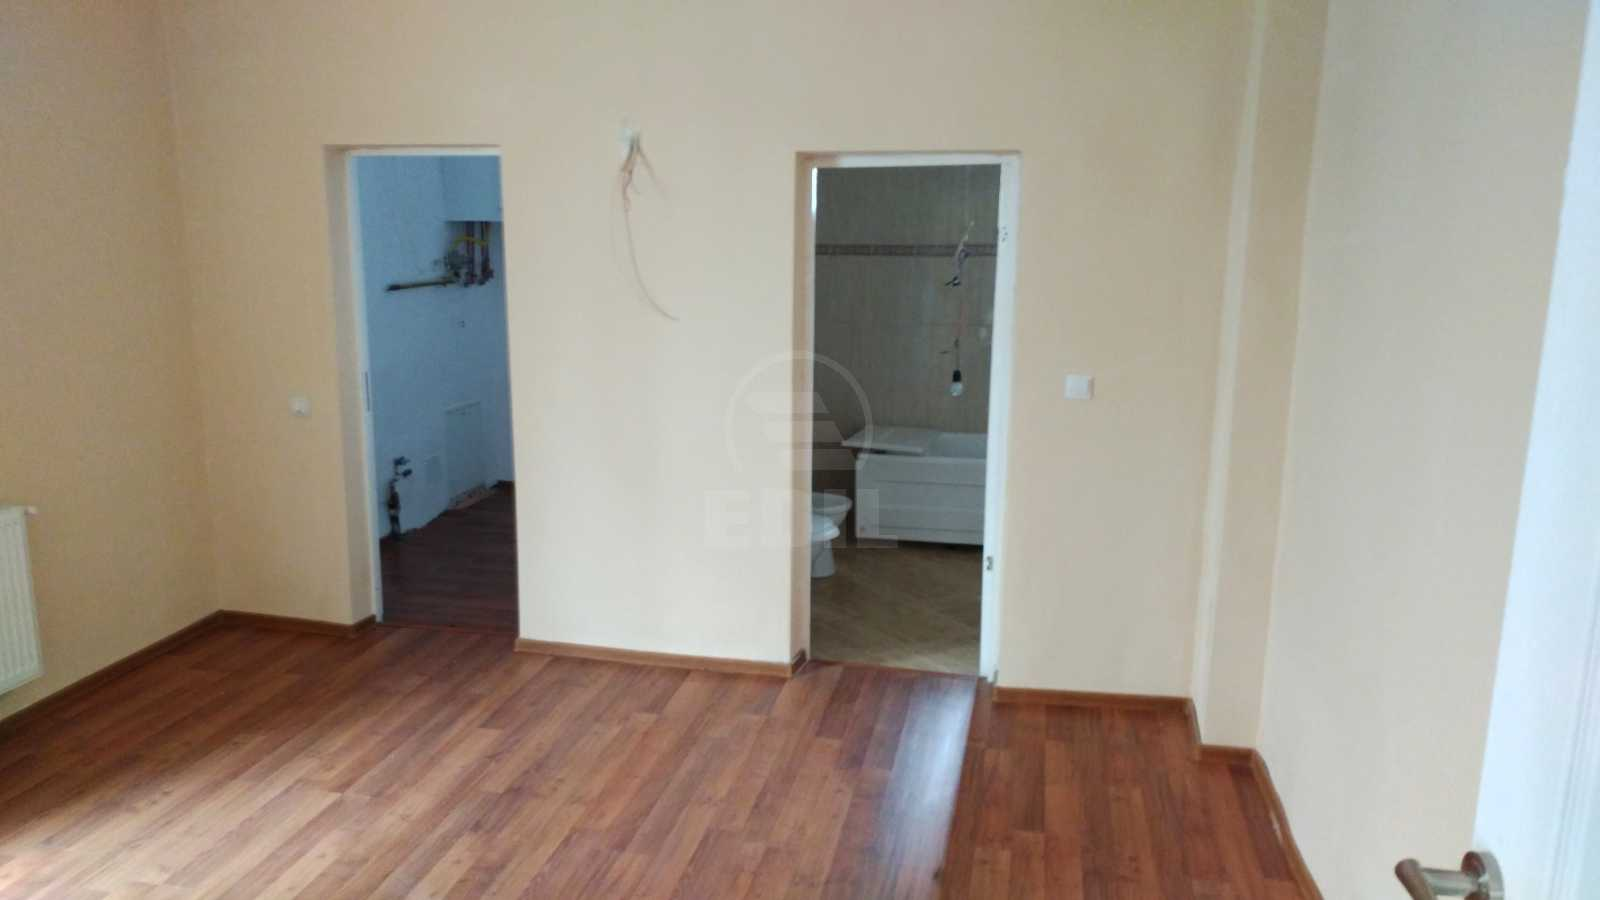 House for rent 3 rooms, CACJ284919-6